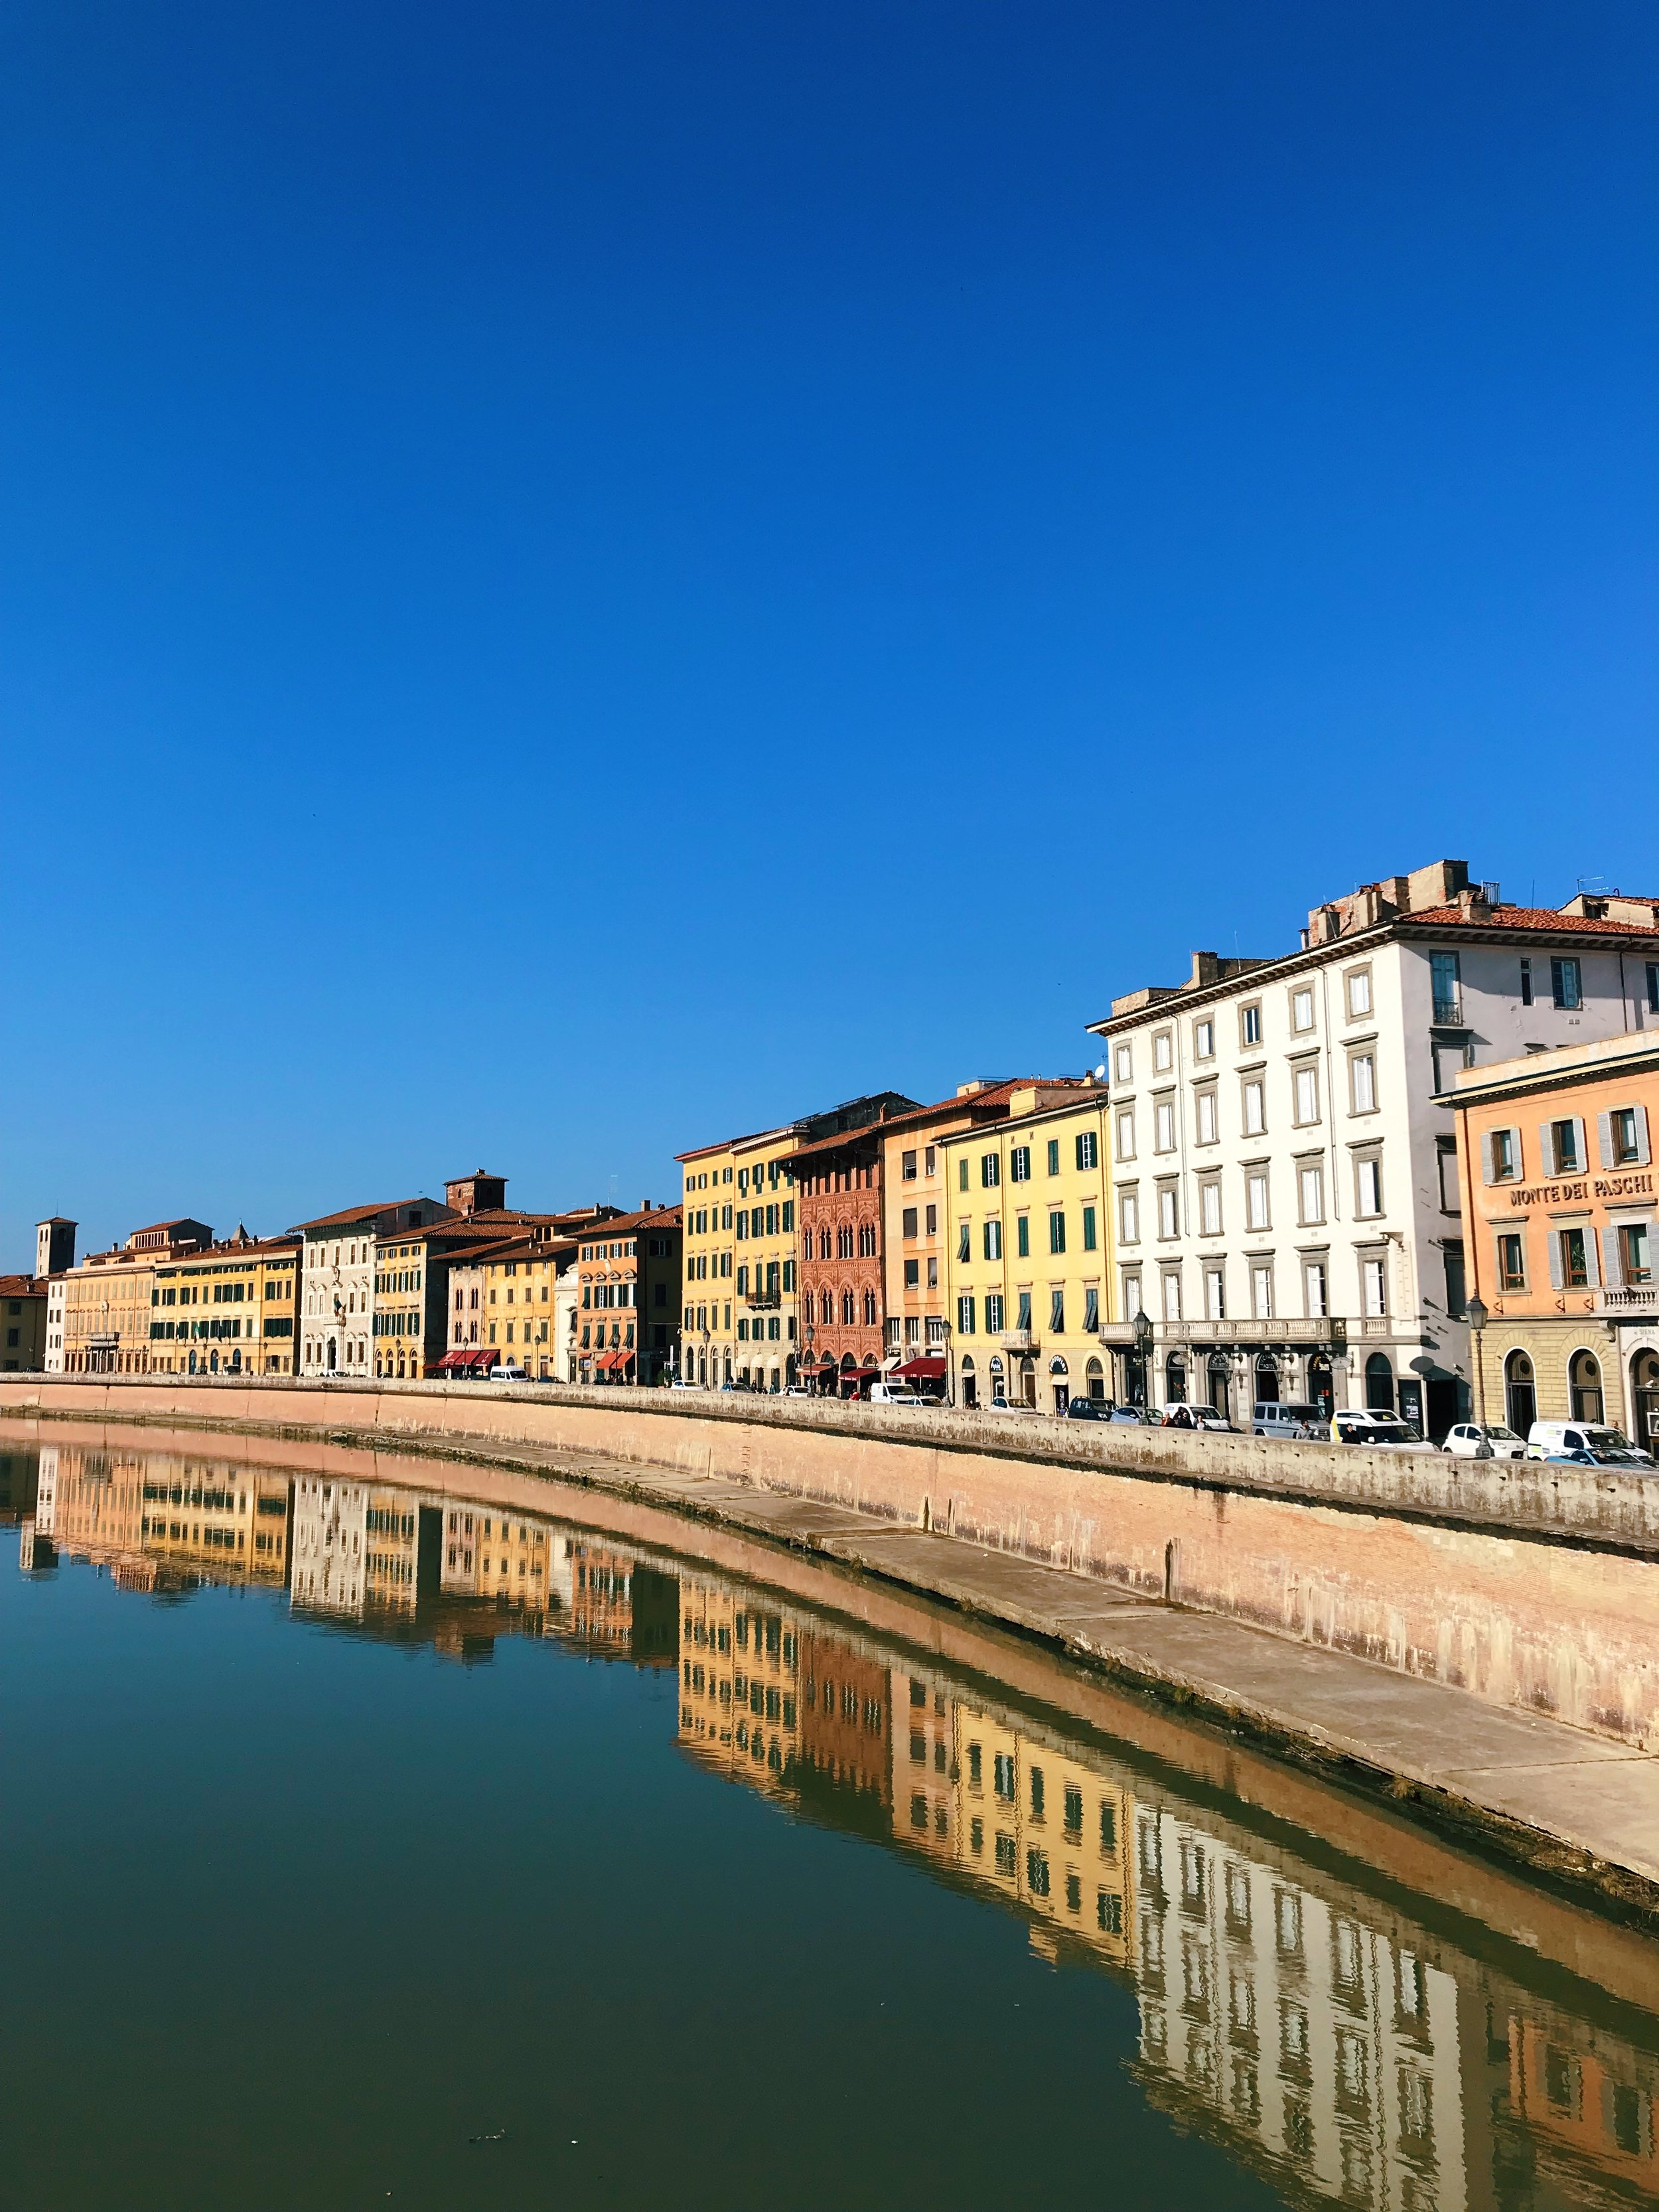 Did you think this was Florence for a sec? Nope! Just tranquil Pisa. Well, usually tranquil. This is a left-leaning university town, and people like a good protest.